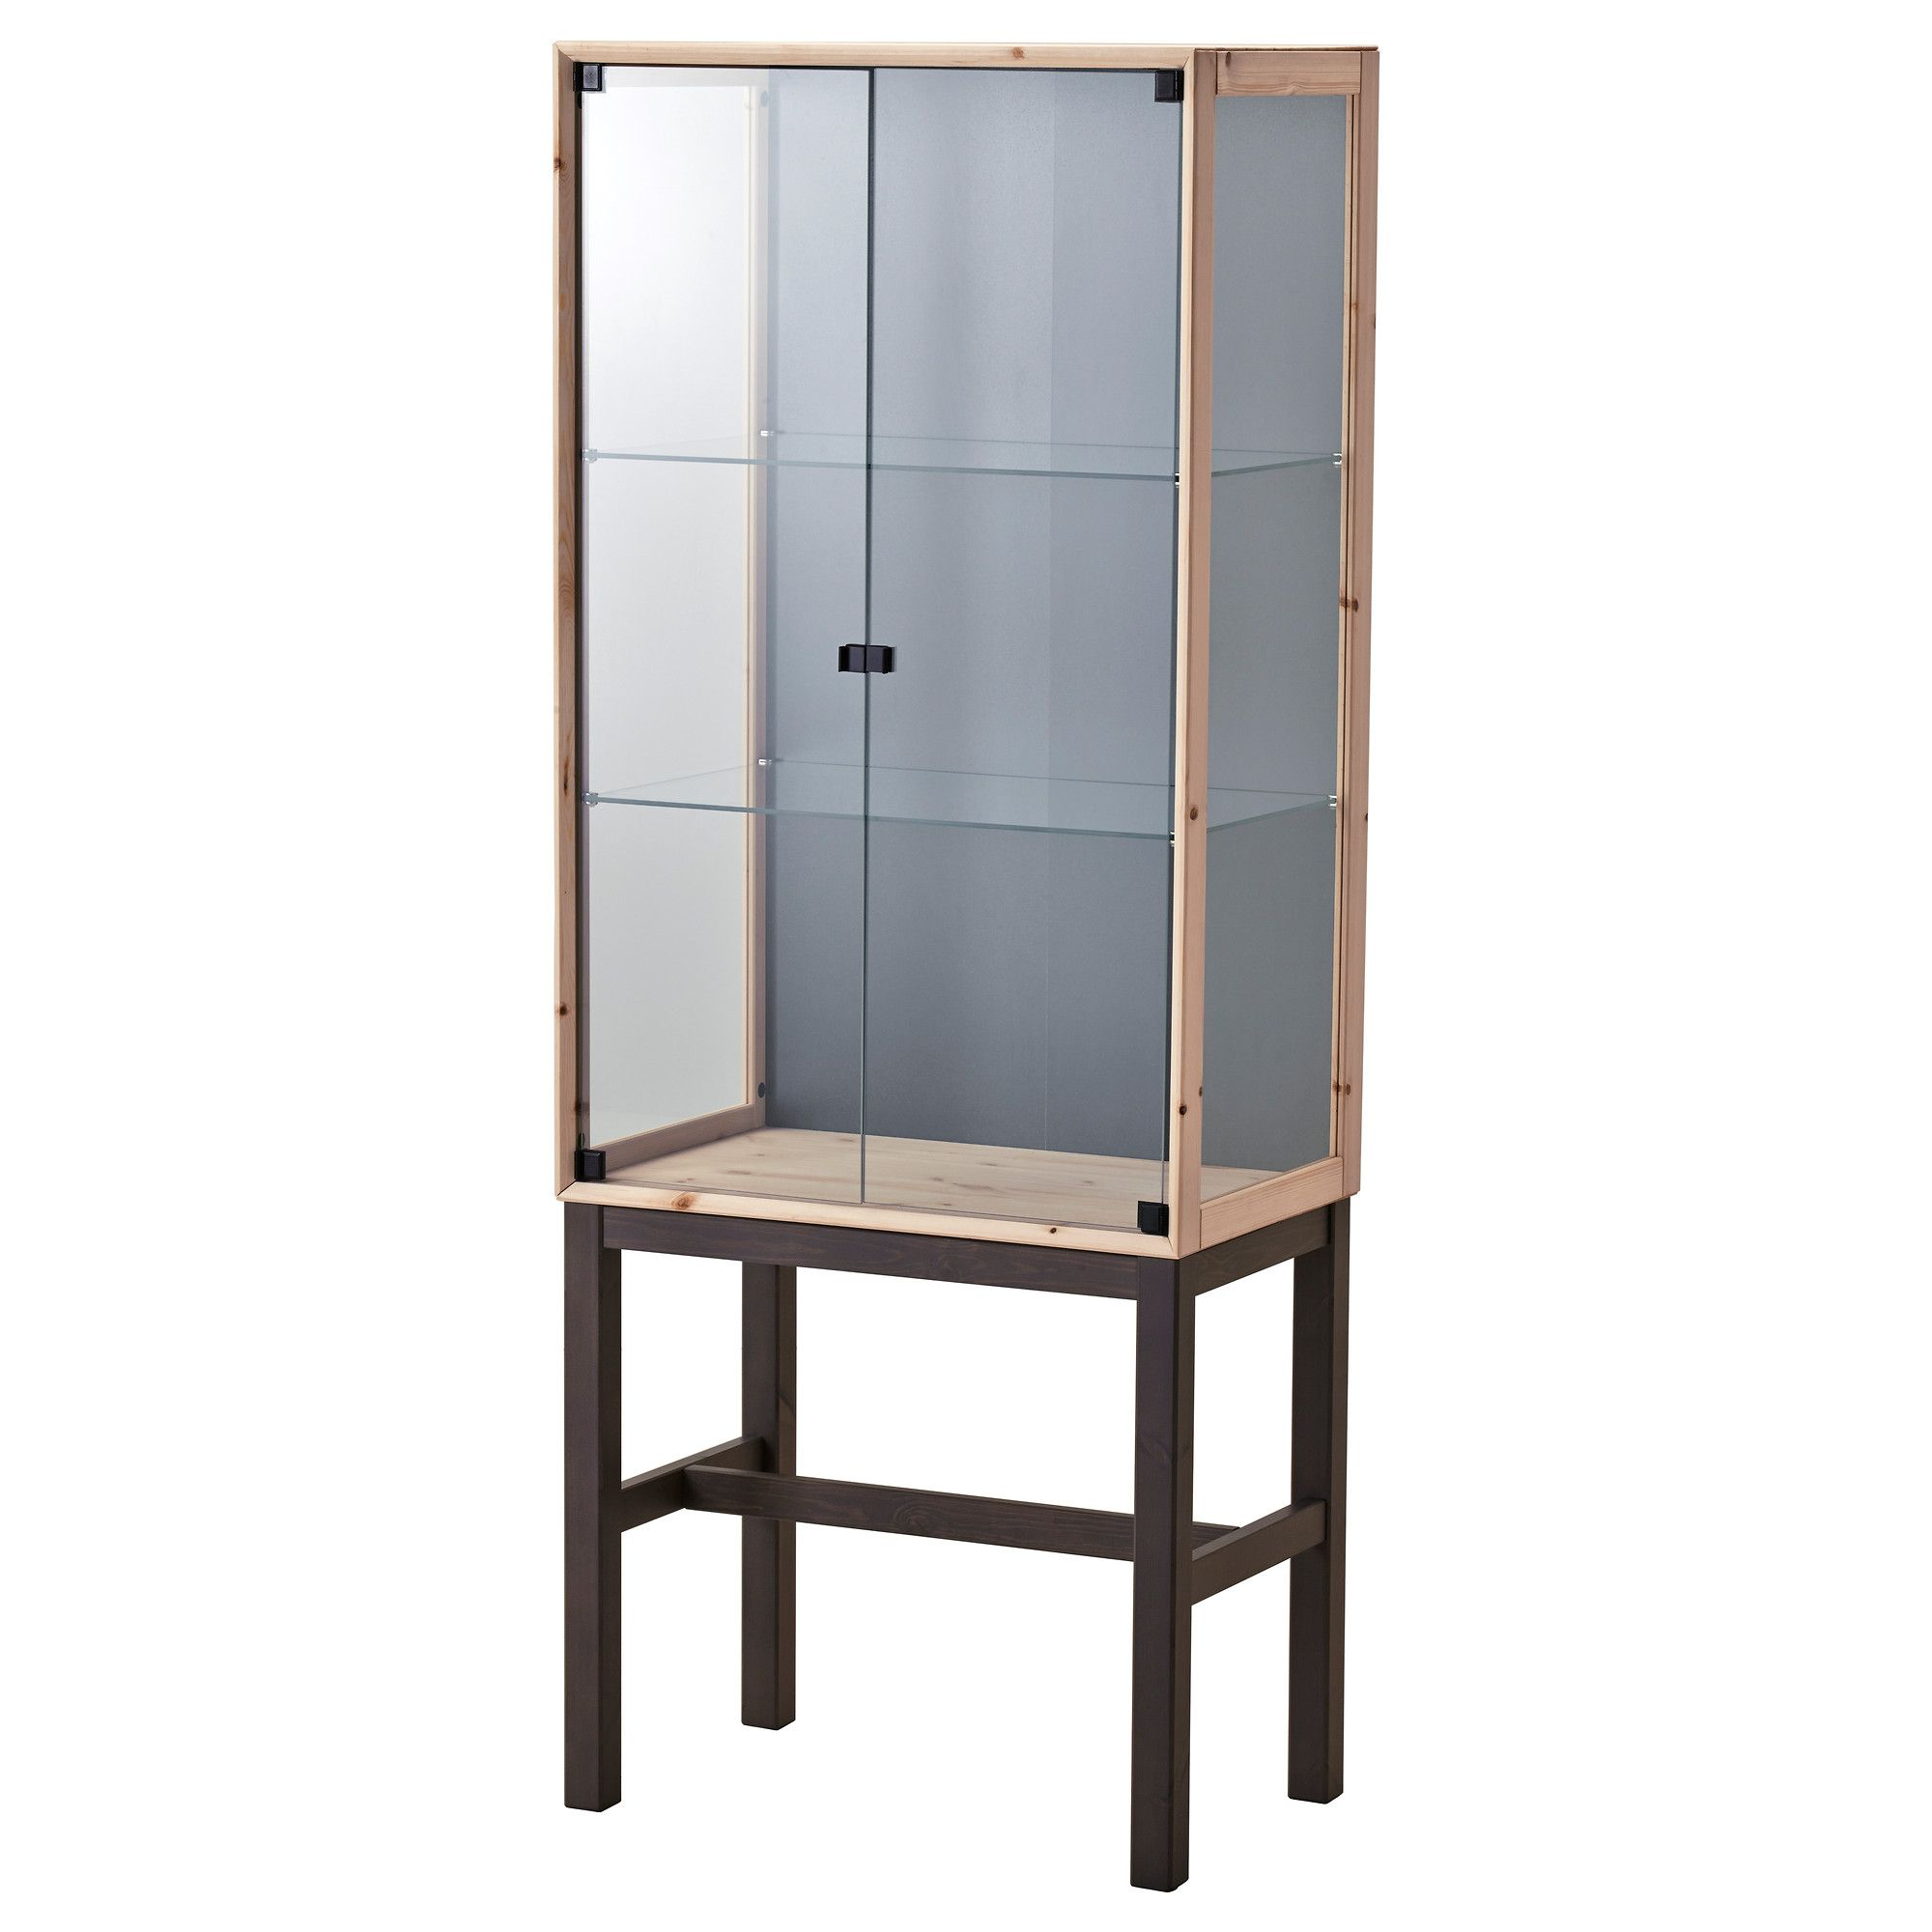 Schaukasten Holz Ikea Ikea NornÄs Glass Door Cabinet With 2 Doors Untreated